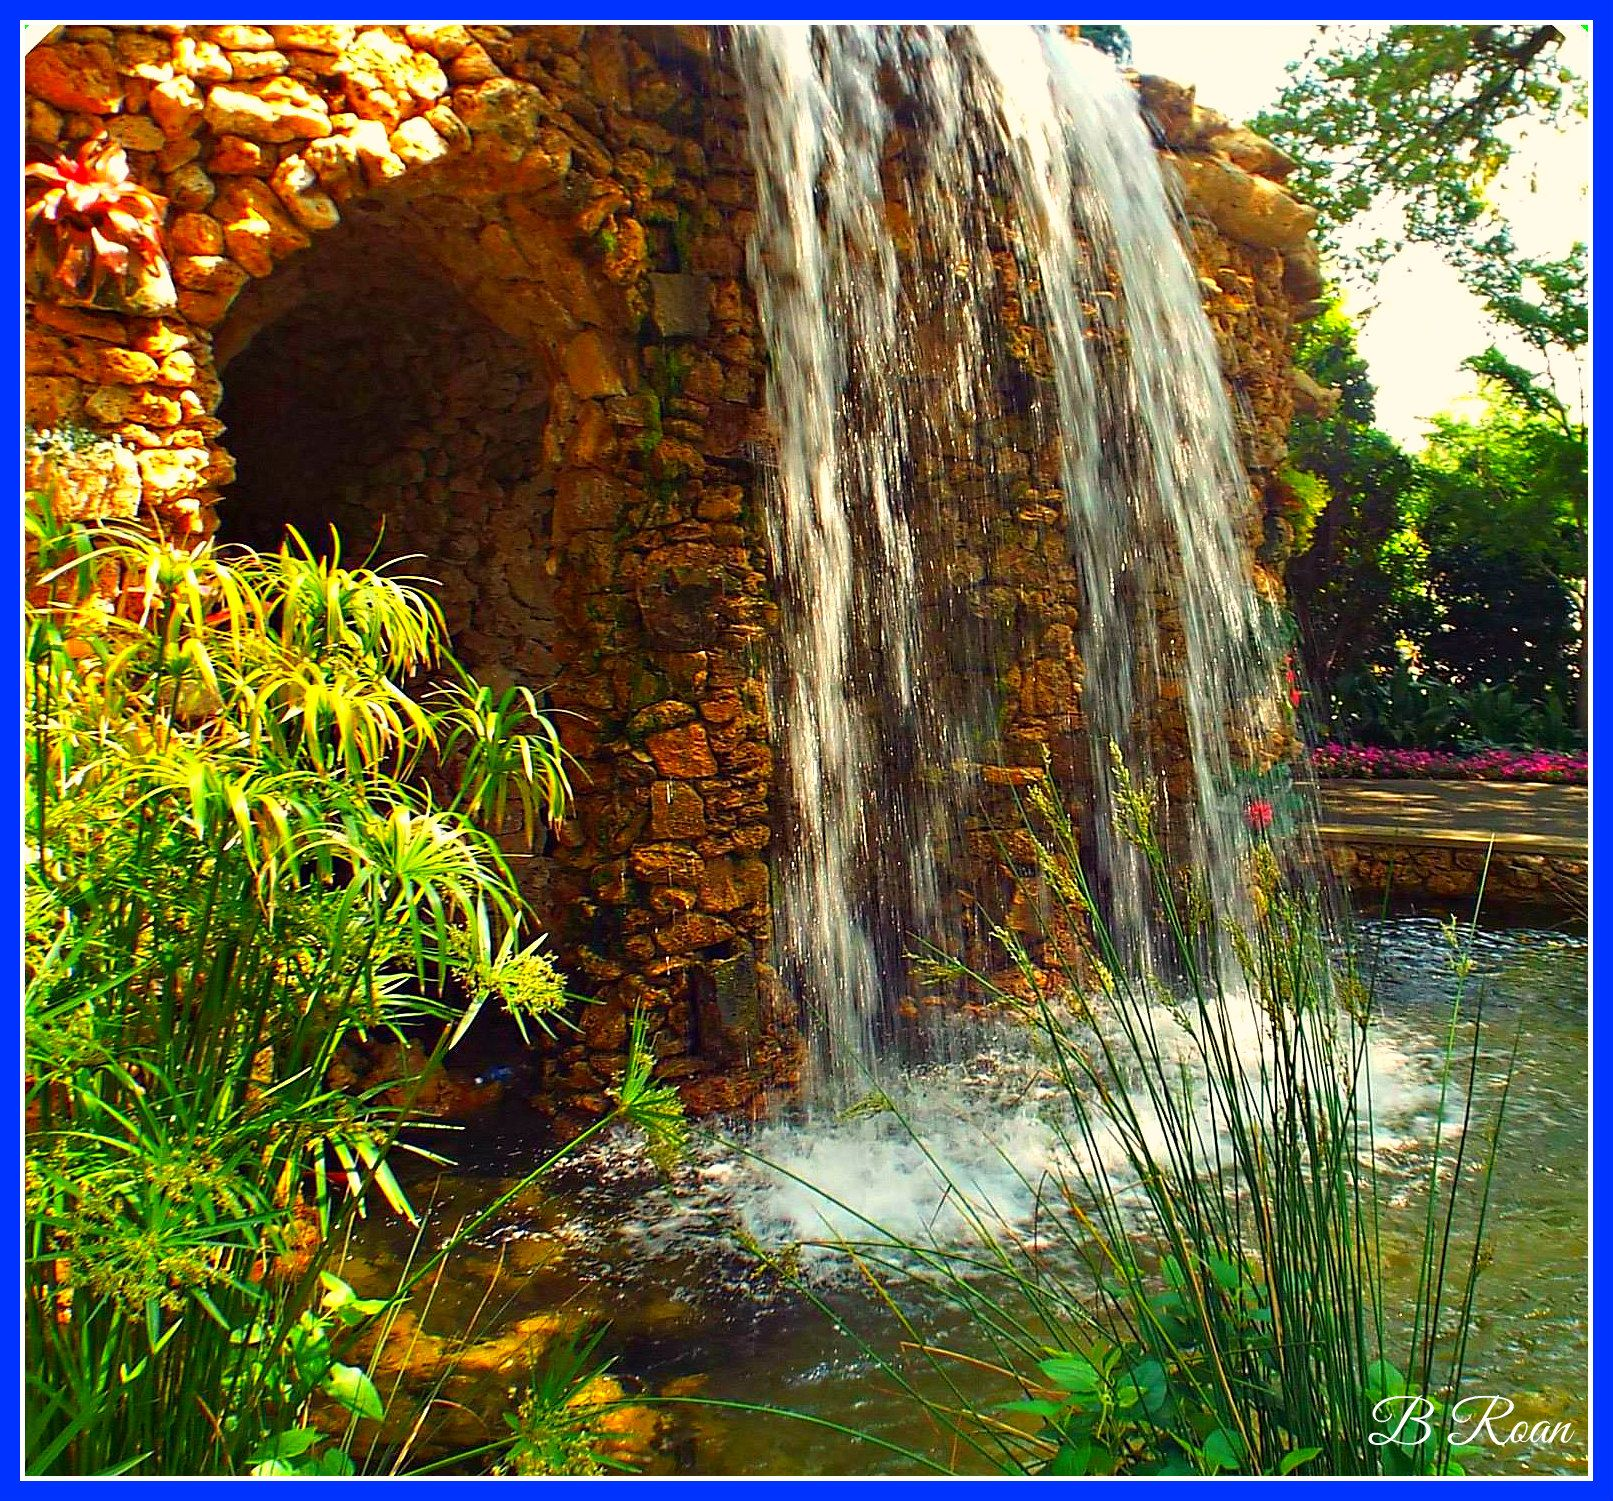 Pin by Billy Roan on Dallas Arboretum and Botanical Gardens ...